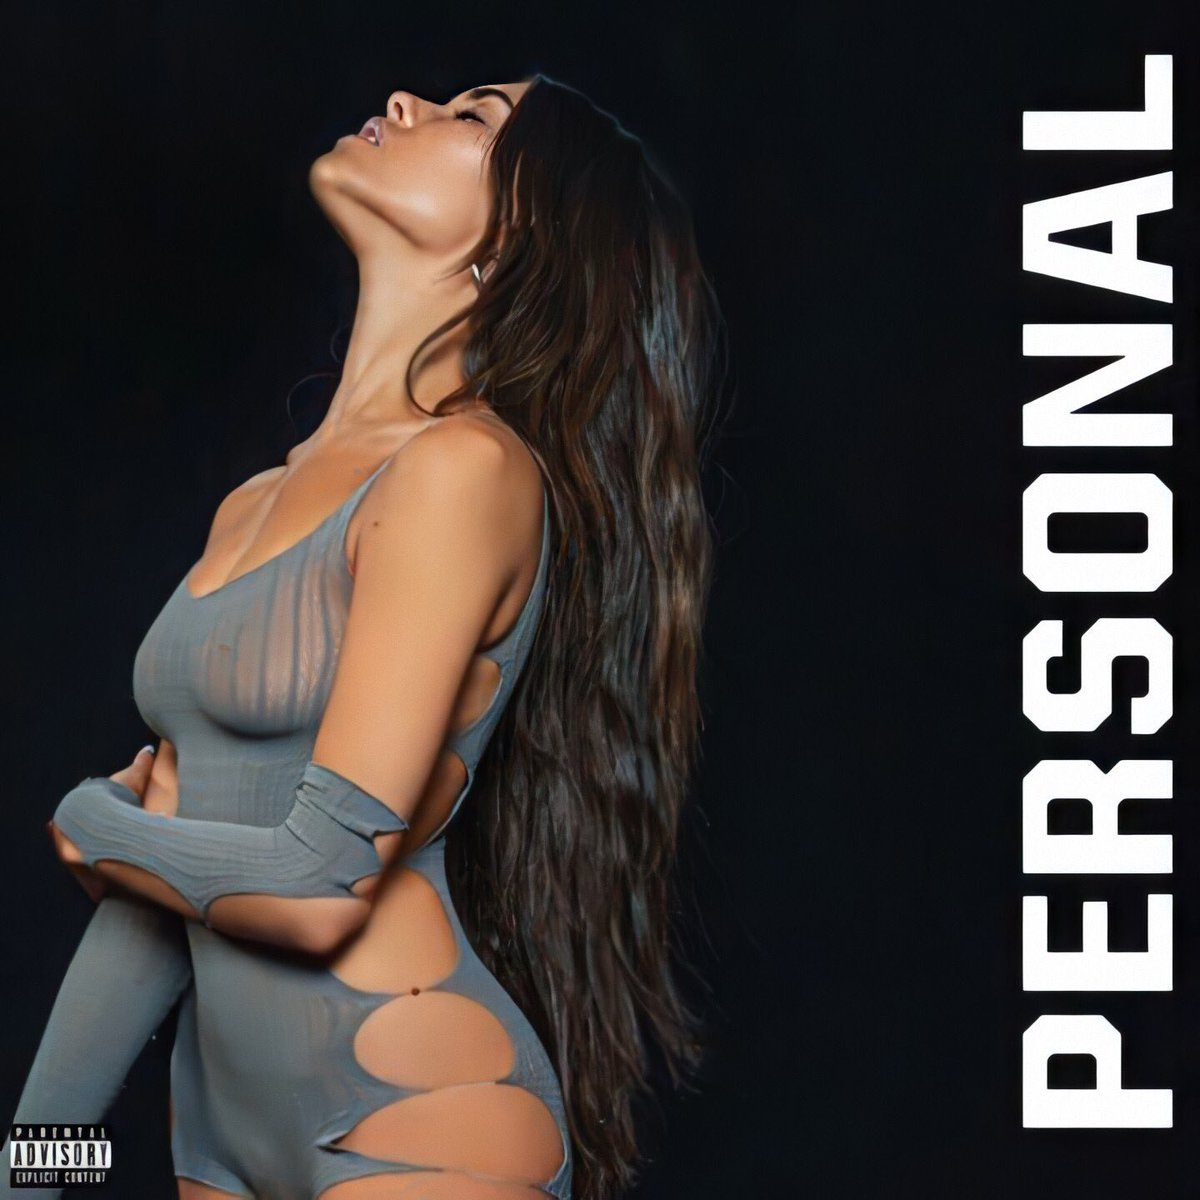 "my third album titled ""Personal"" will be out this saturday (30/05) at 12AM, stay tuned for news! #Personal pic.twitter.com/tEF3dB3uSk"